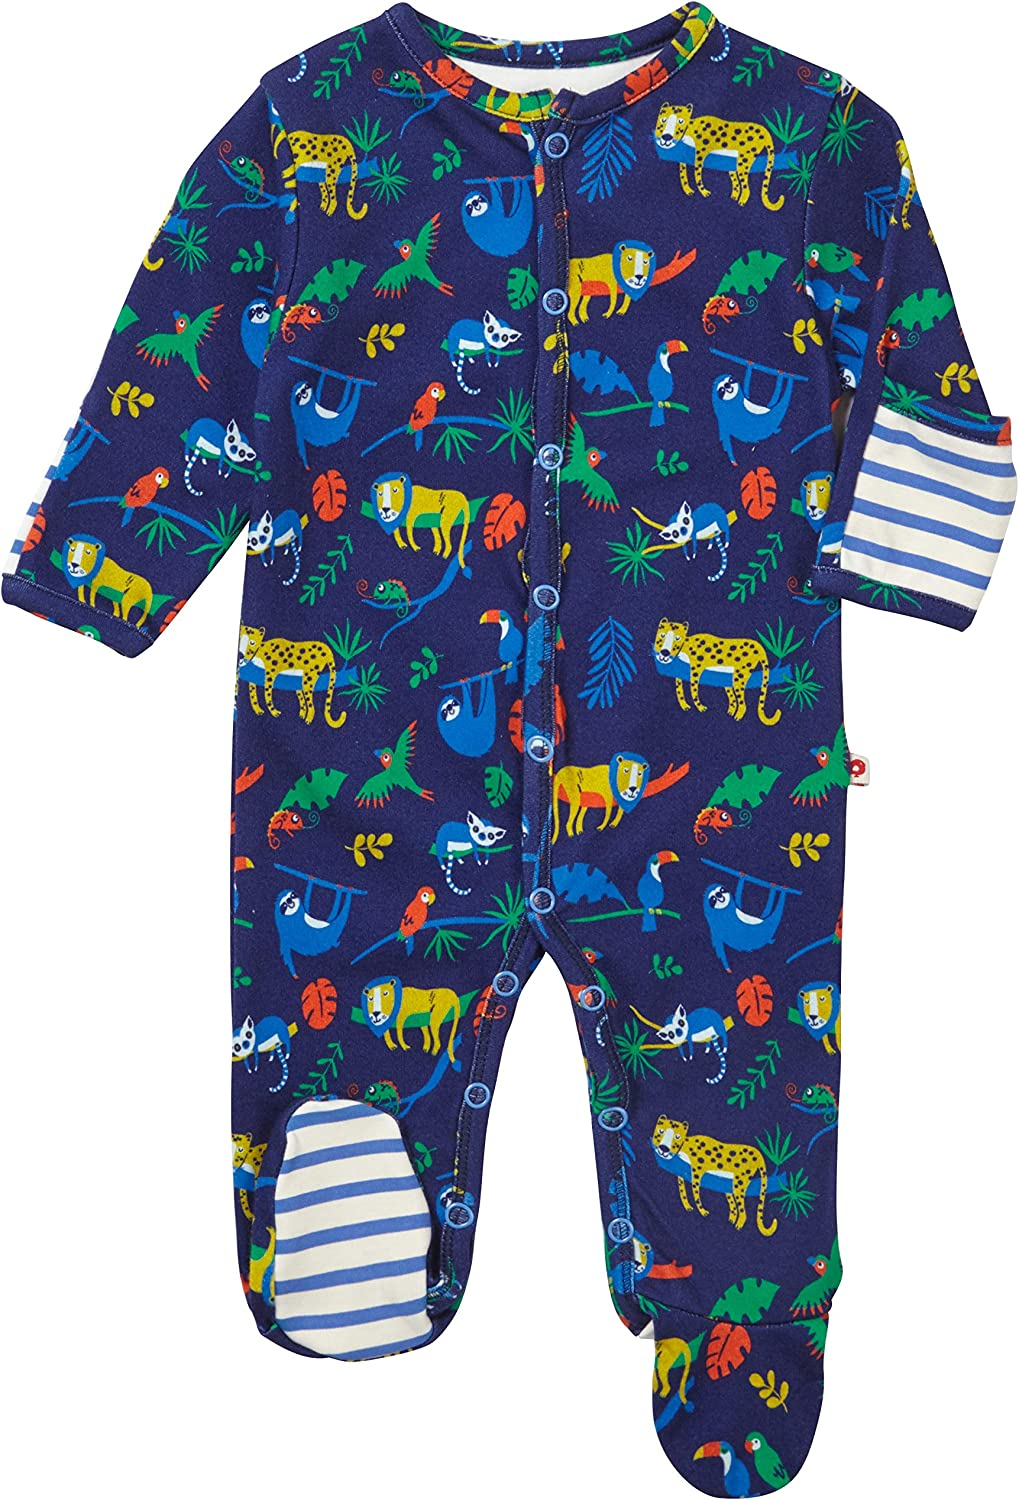 Piccalilly Baby Boys Navy Blue Footed Sleepsuit Animal Safari